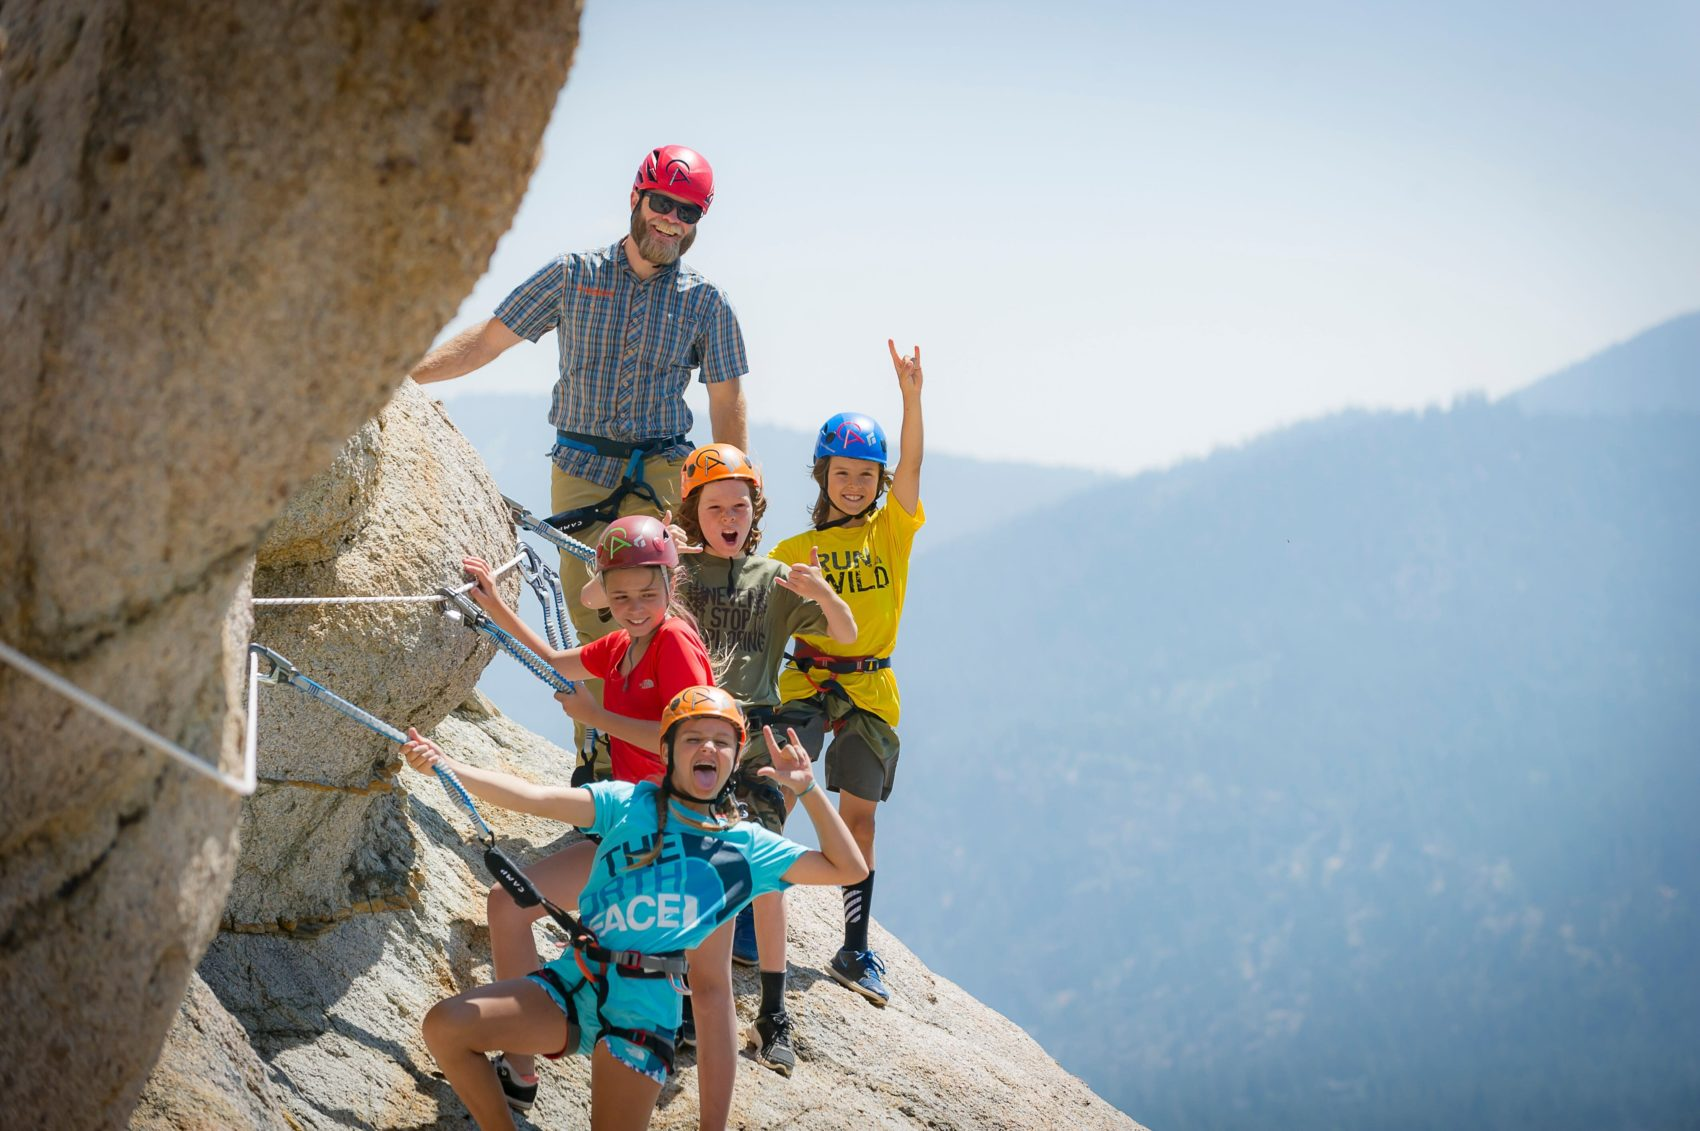 Alpenglow Expeditions, Via Ferrata, Squaw Valley, tram face, california